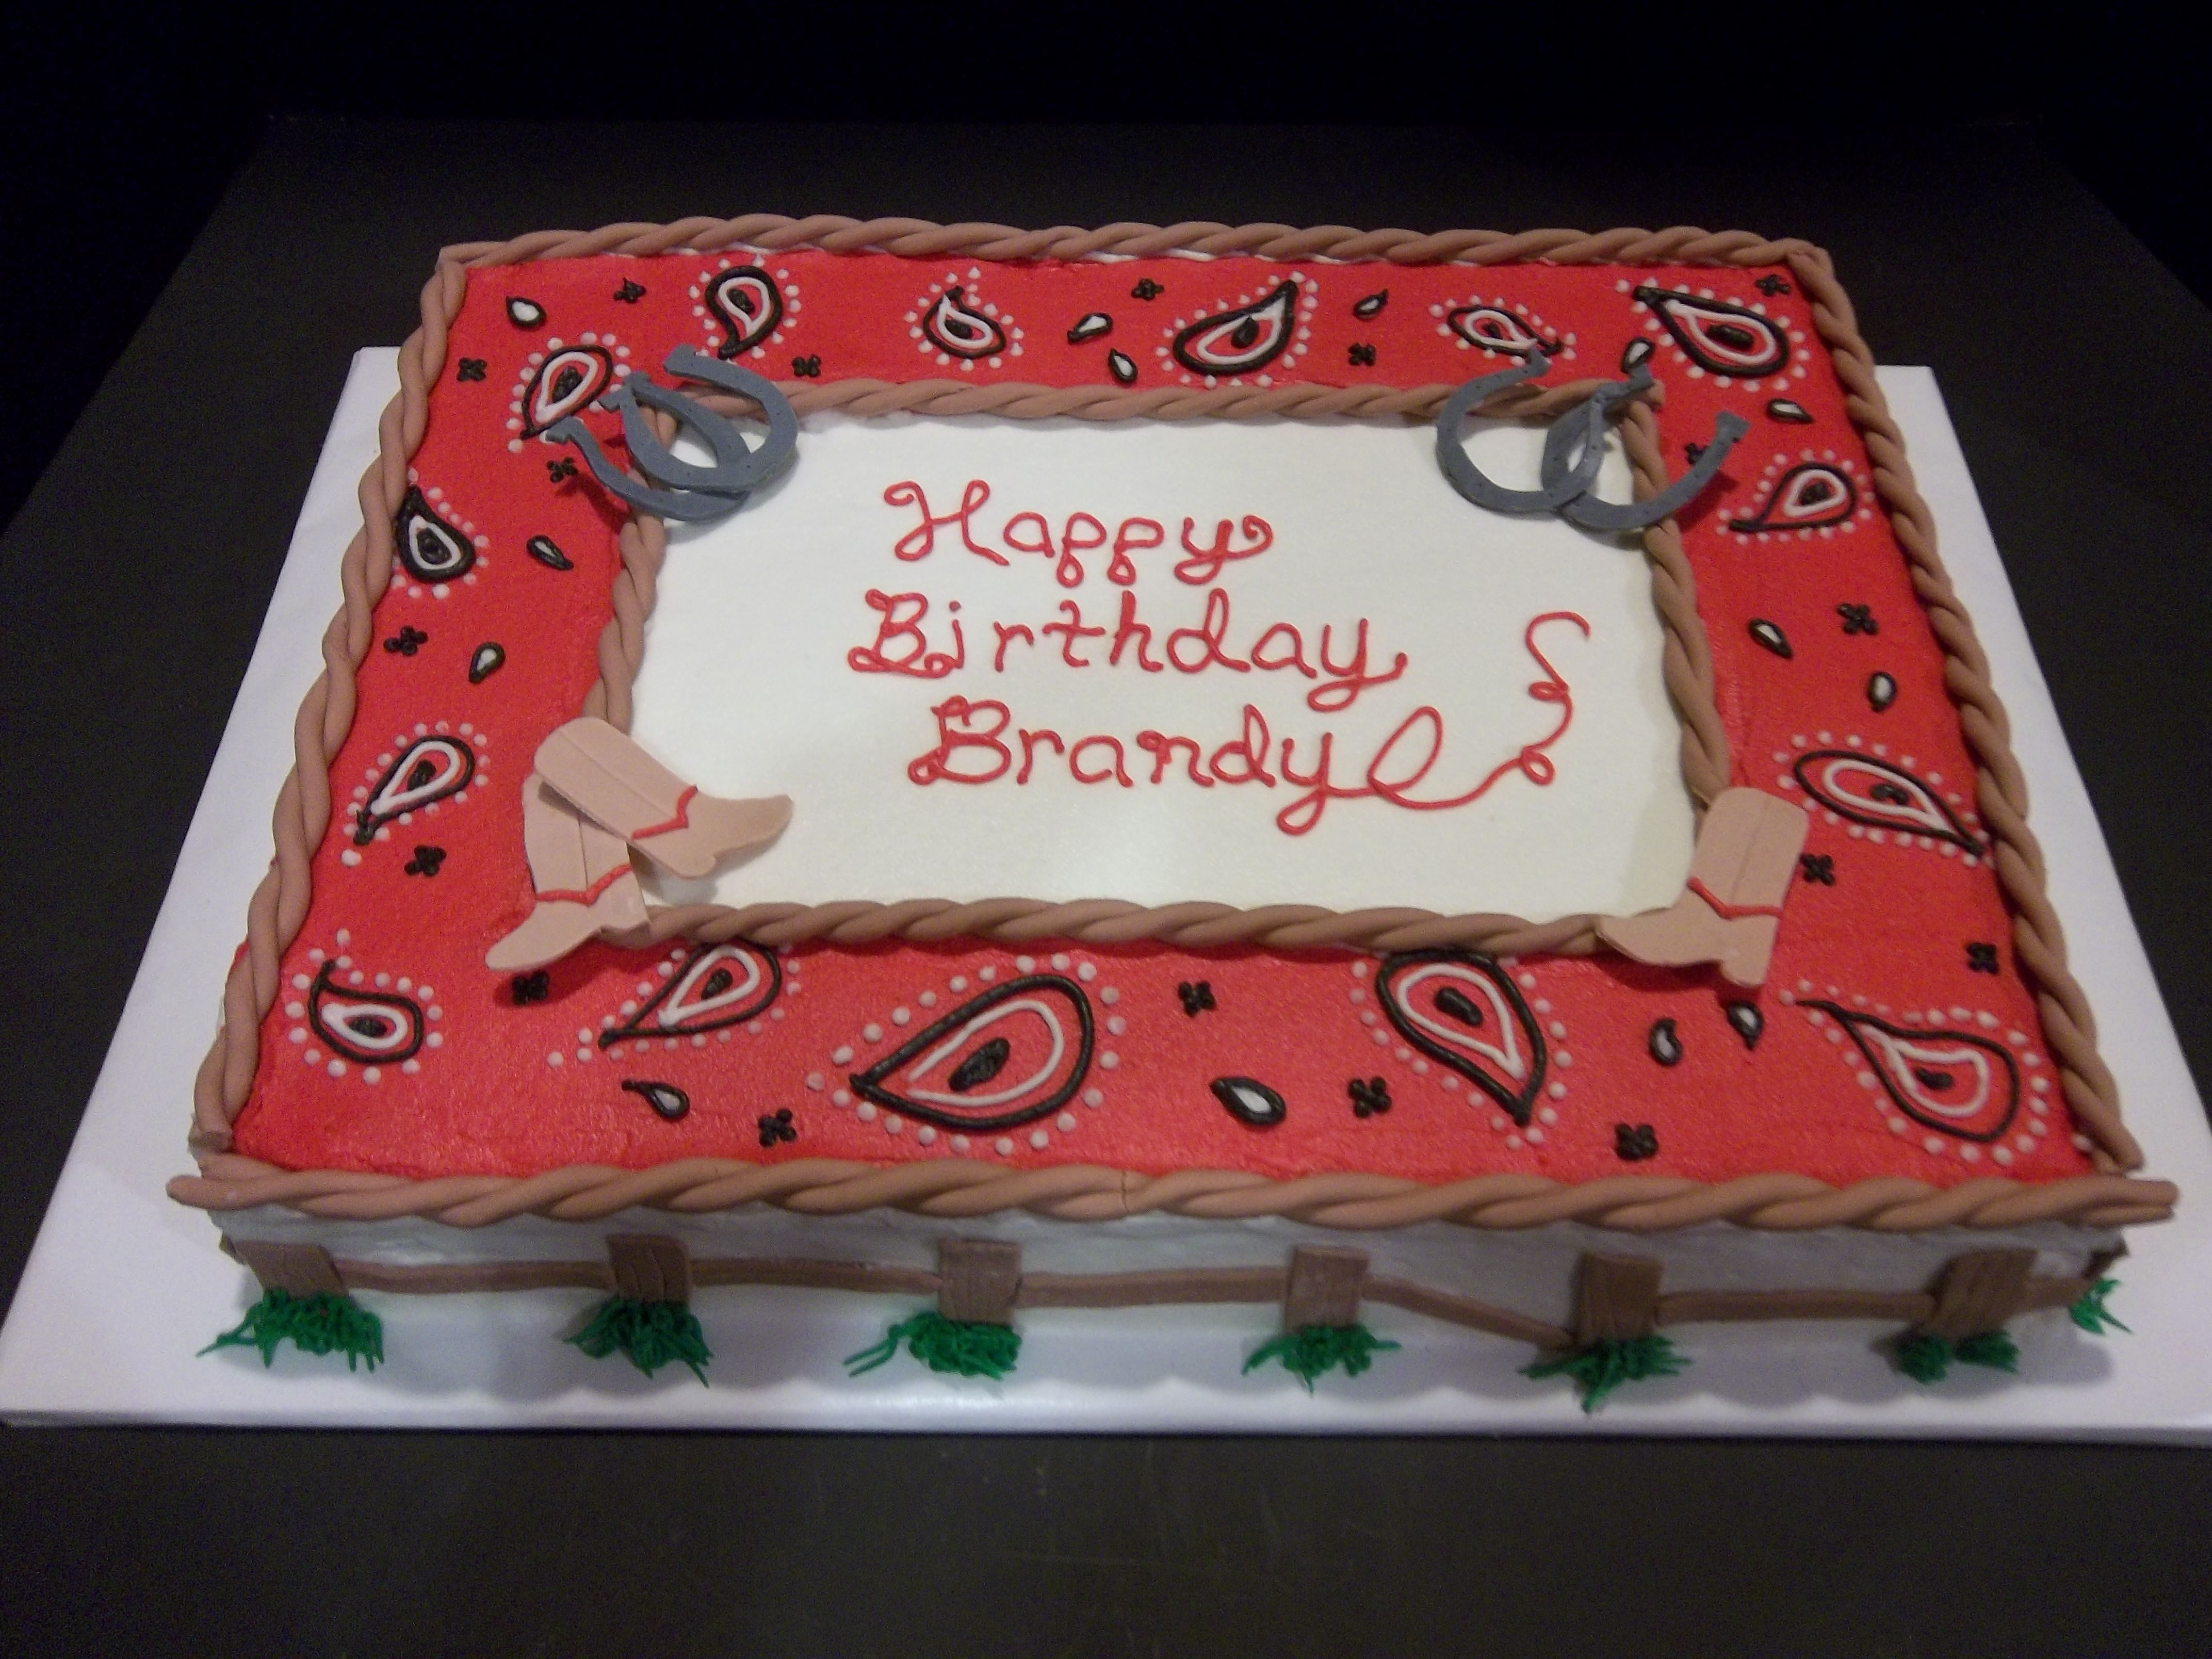 Tremendous Western Themed Birthday Sheet Cake Covered In Buttercream With Funny Birthday Cards Online Alyptdamsfinfo